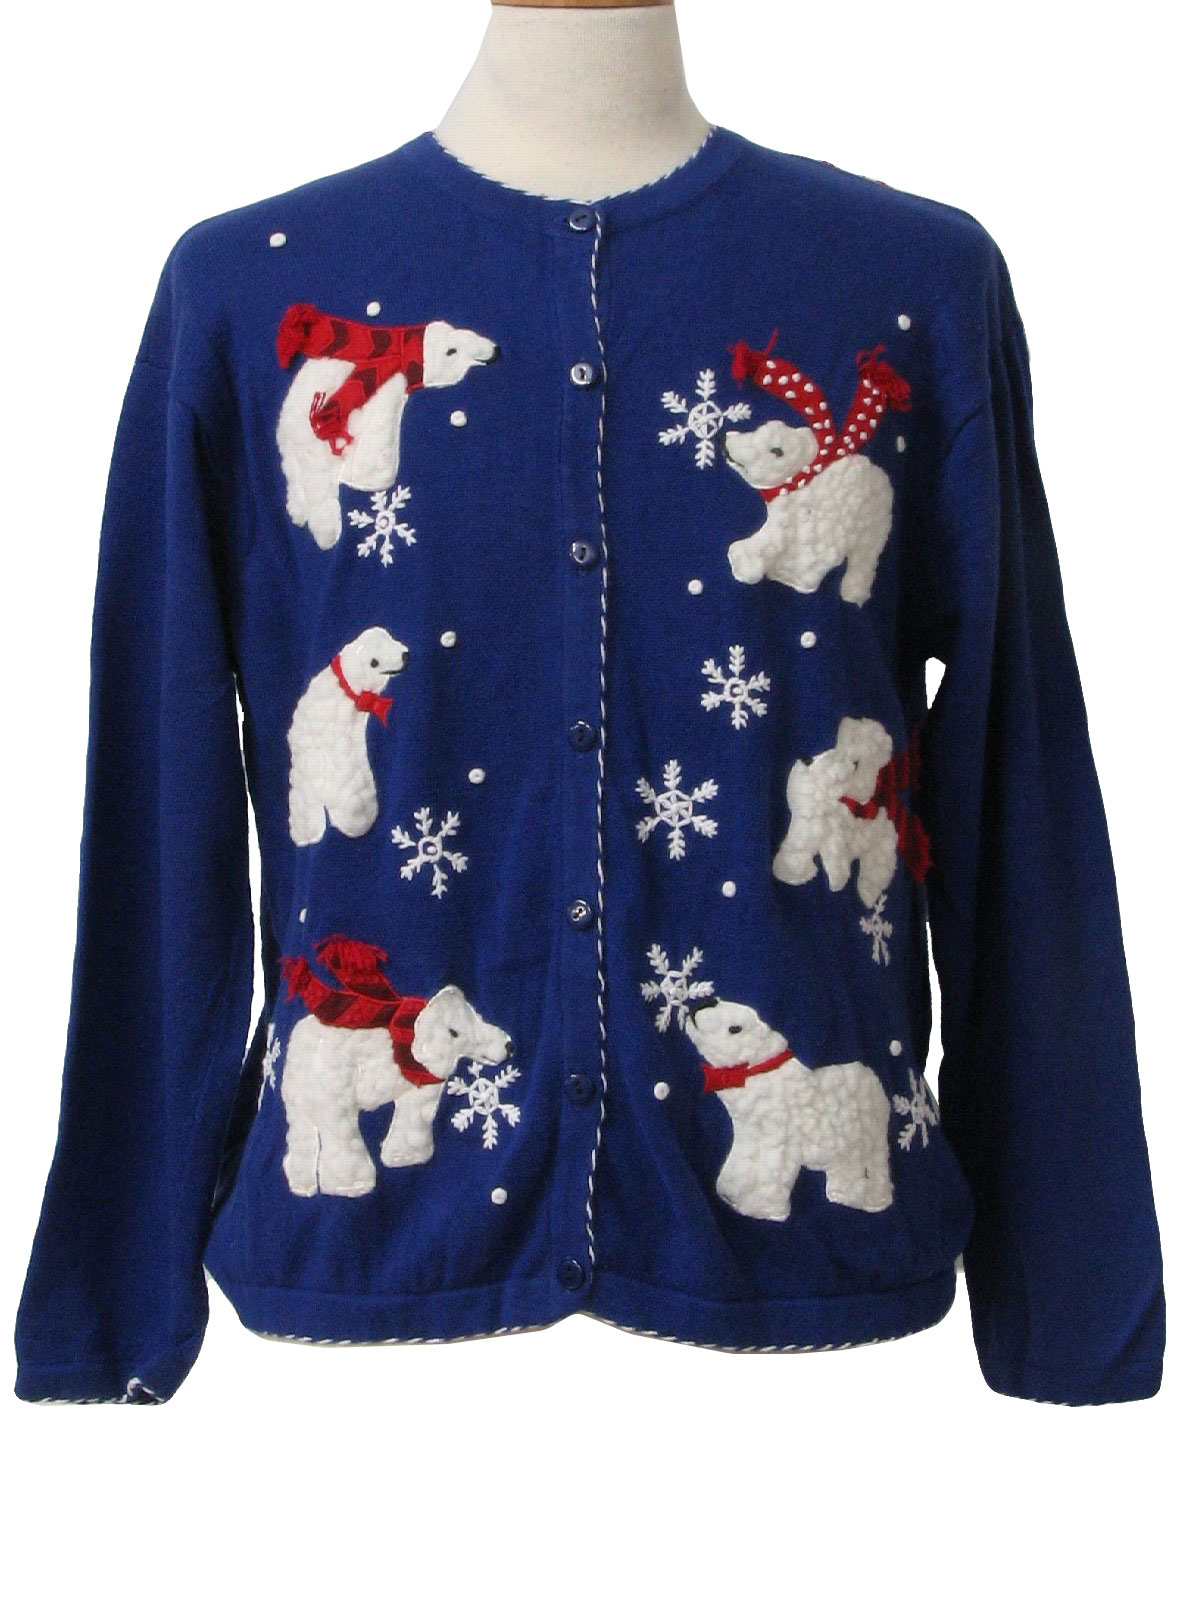 Womens Ugly Christmas Sweater: -Terazzo- Womens royal blue background